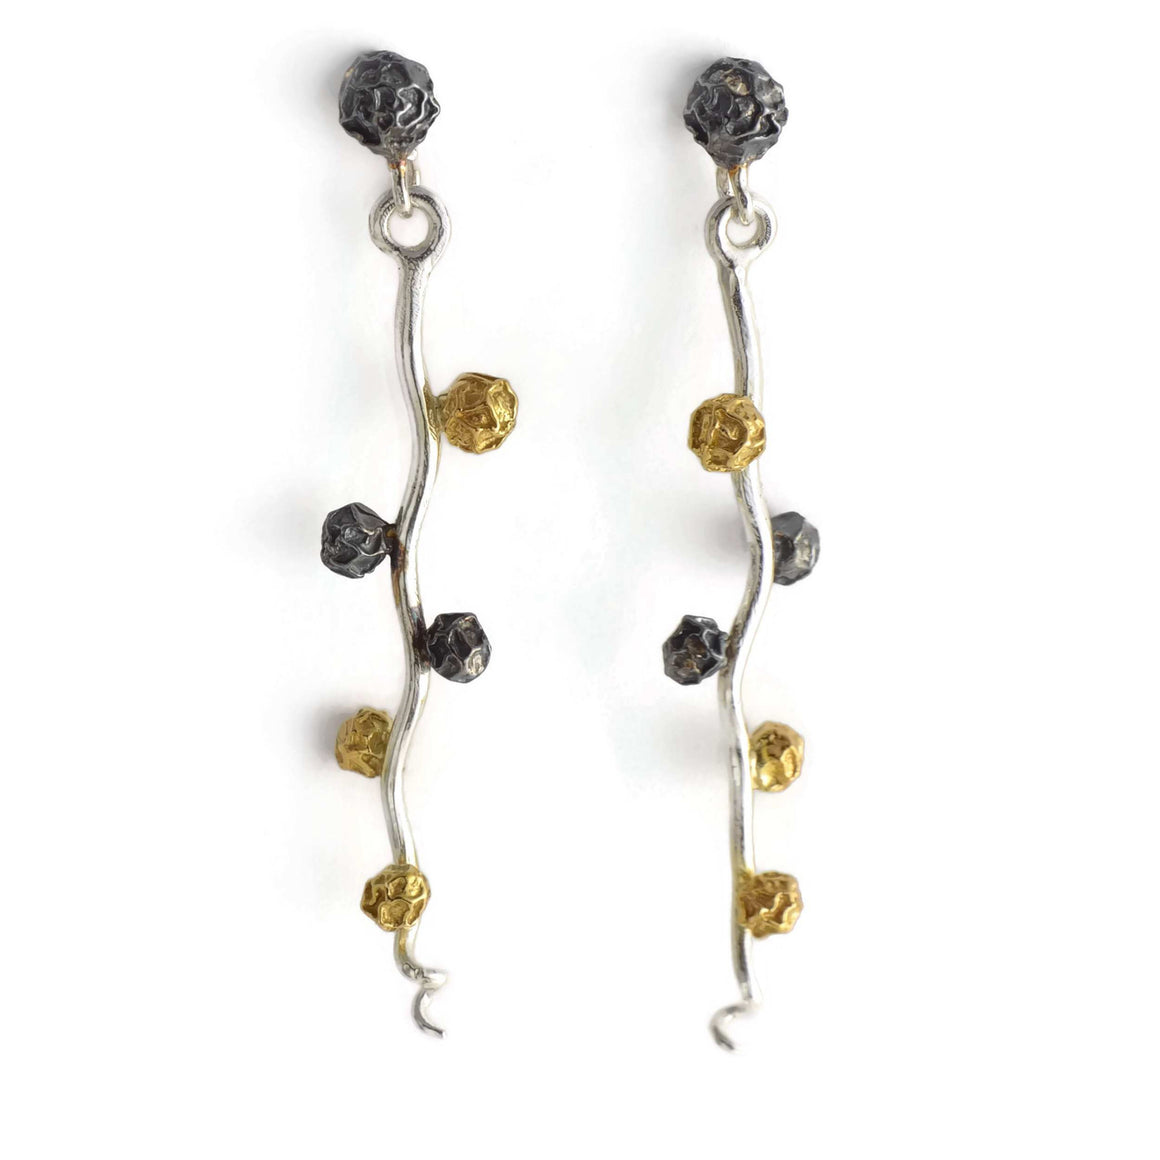 A peppercorn earrings design, floral and fruit stud earrings.